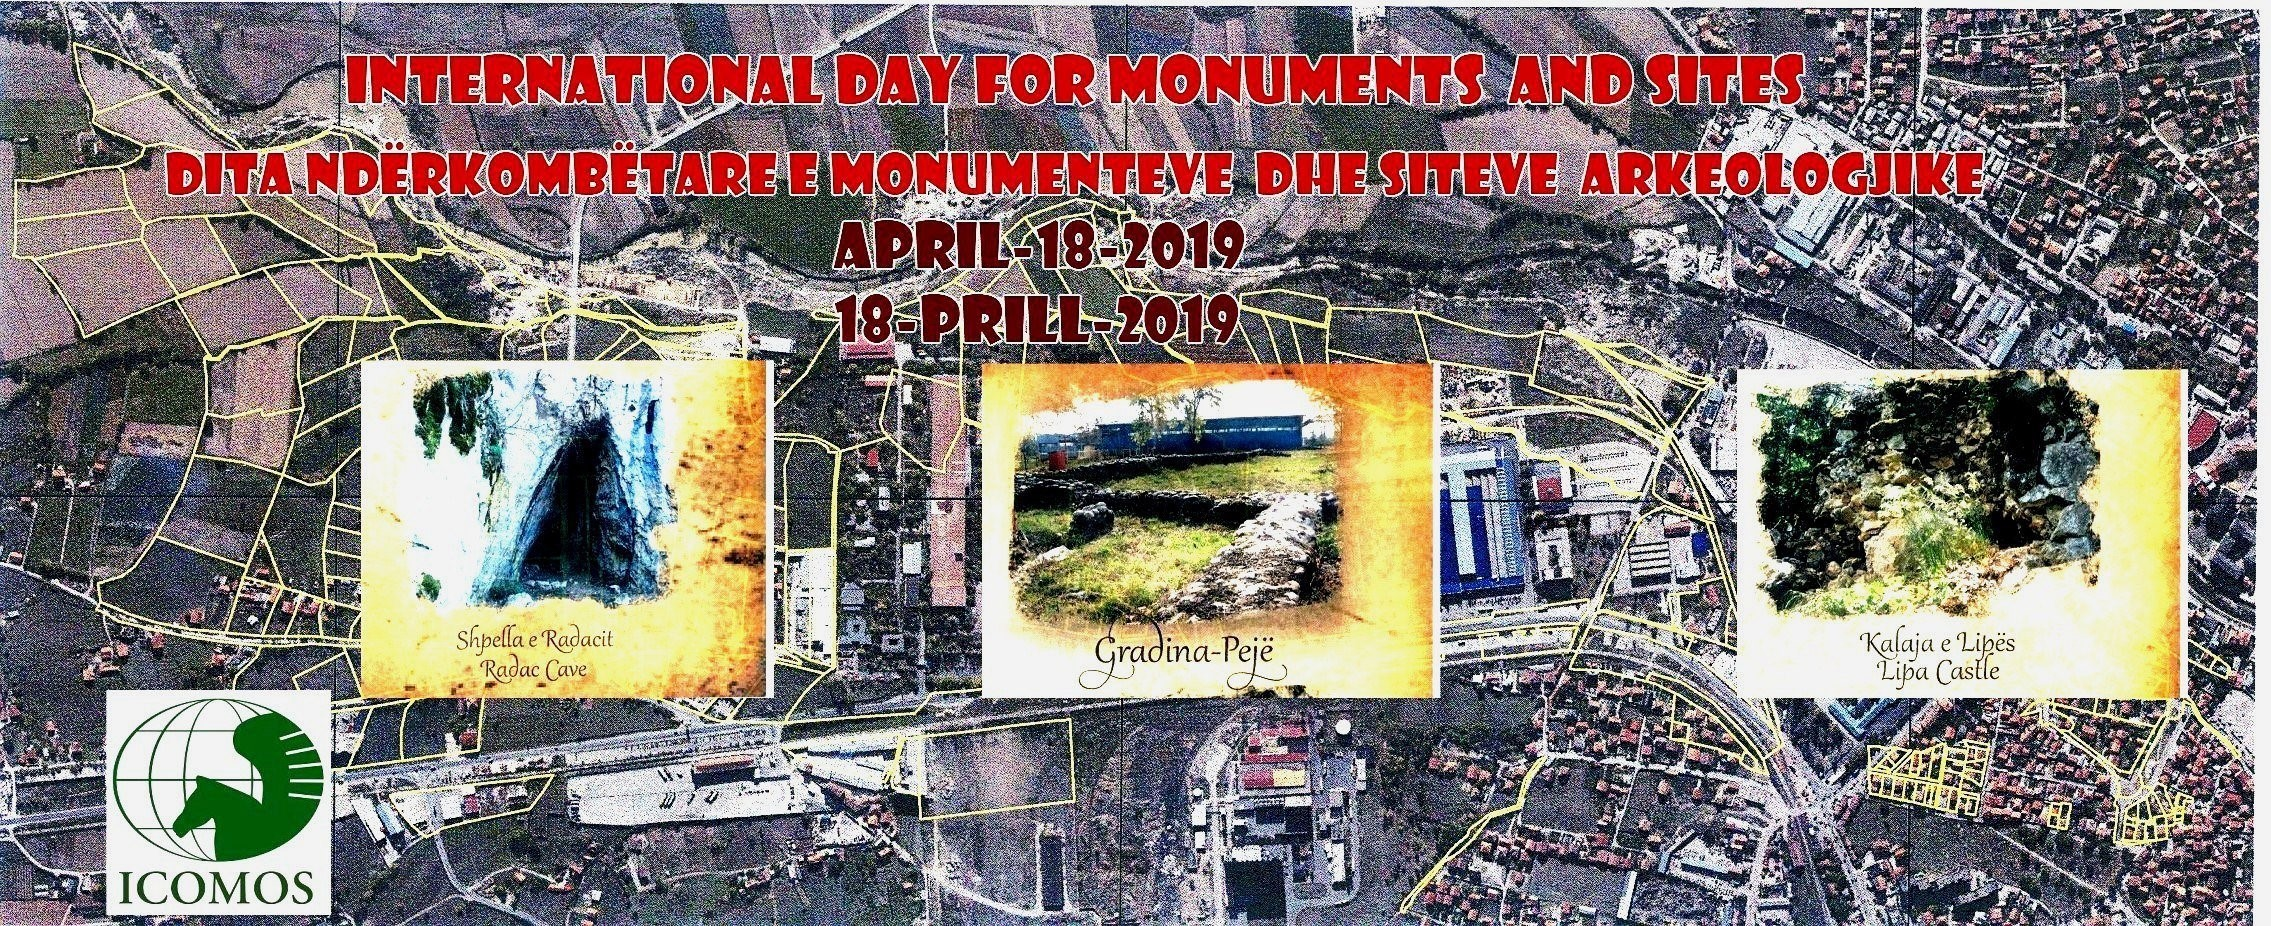 Evénements 2019 - International Council on Monuments and Sites